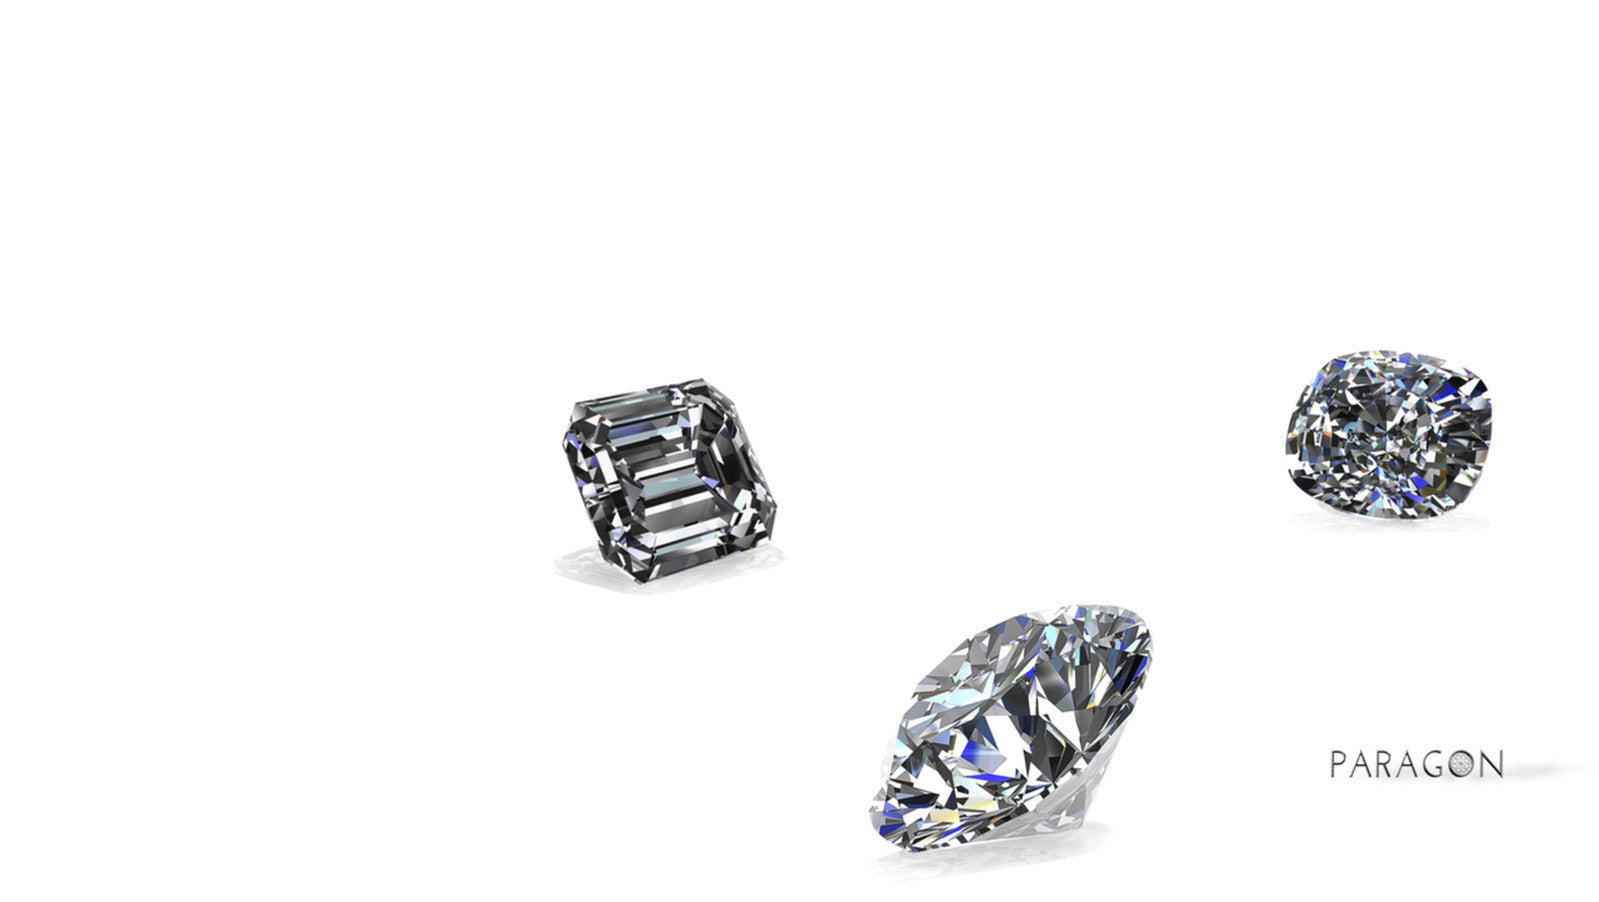 PARAGON MOISSANITE loose stones exclusively from VanderboonJewellery.com